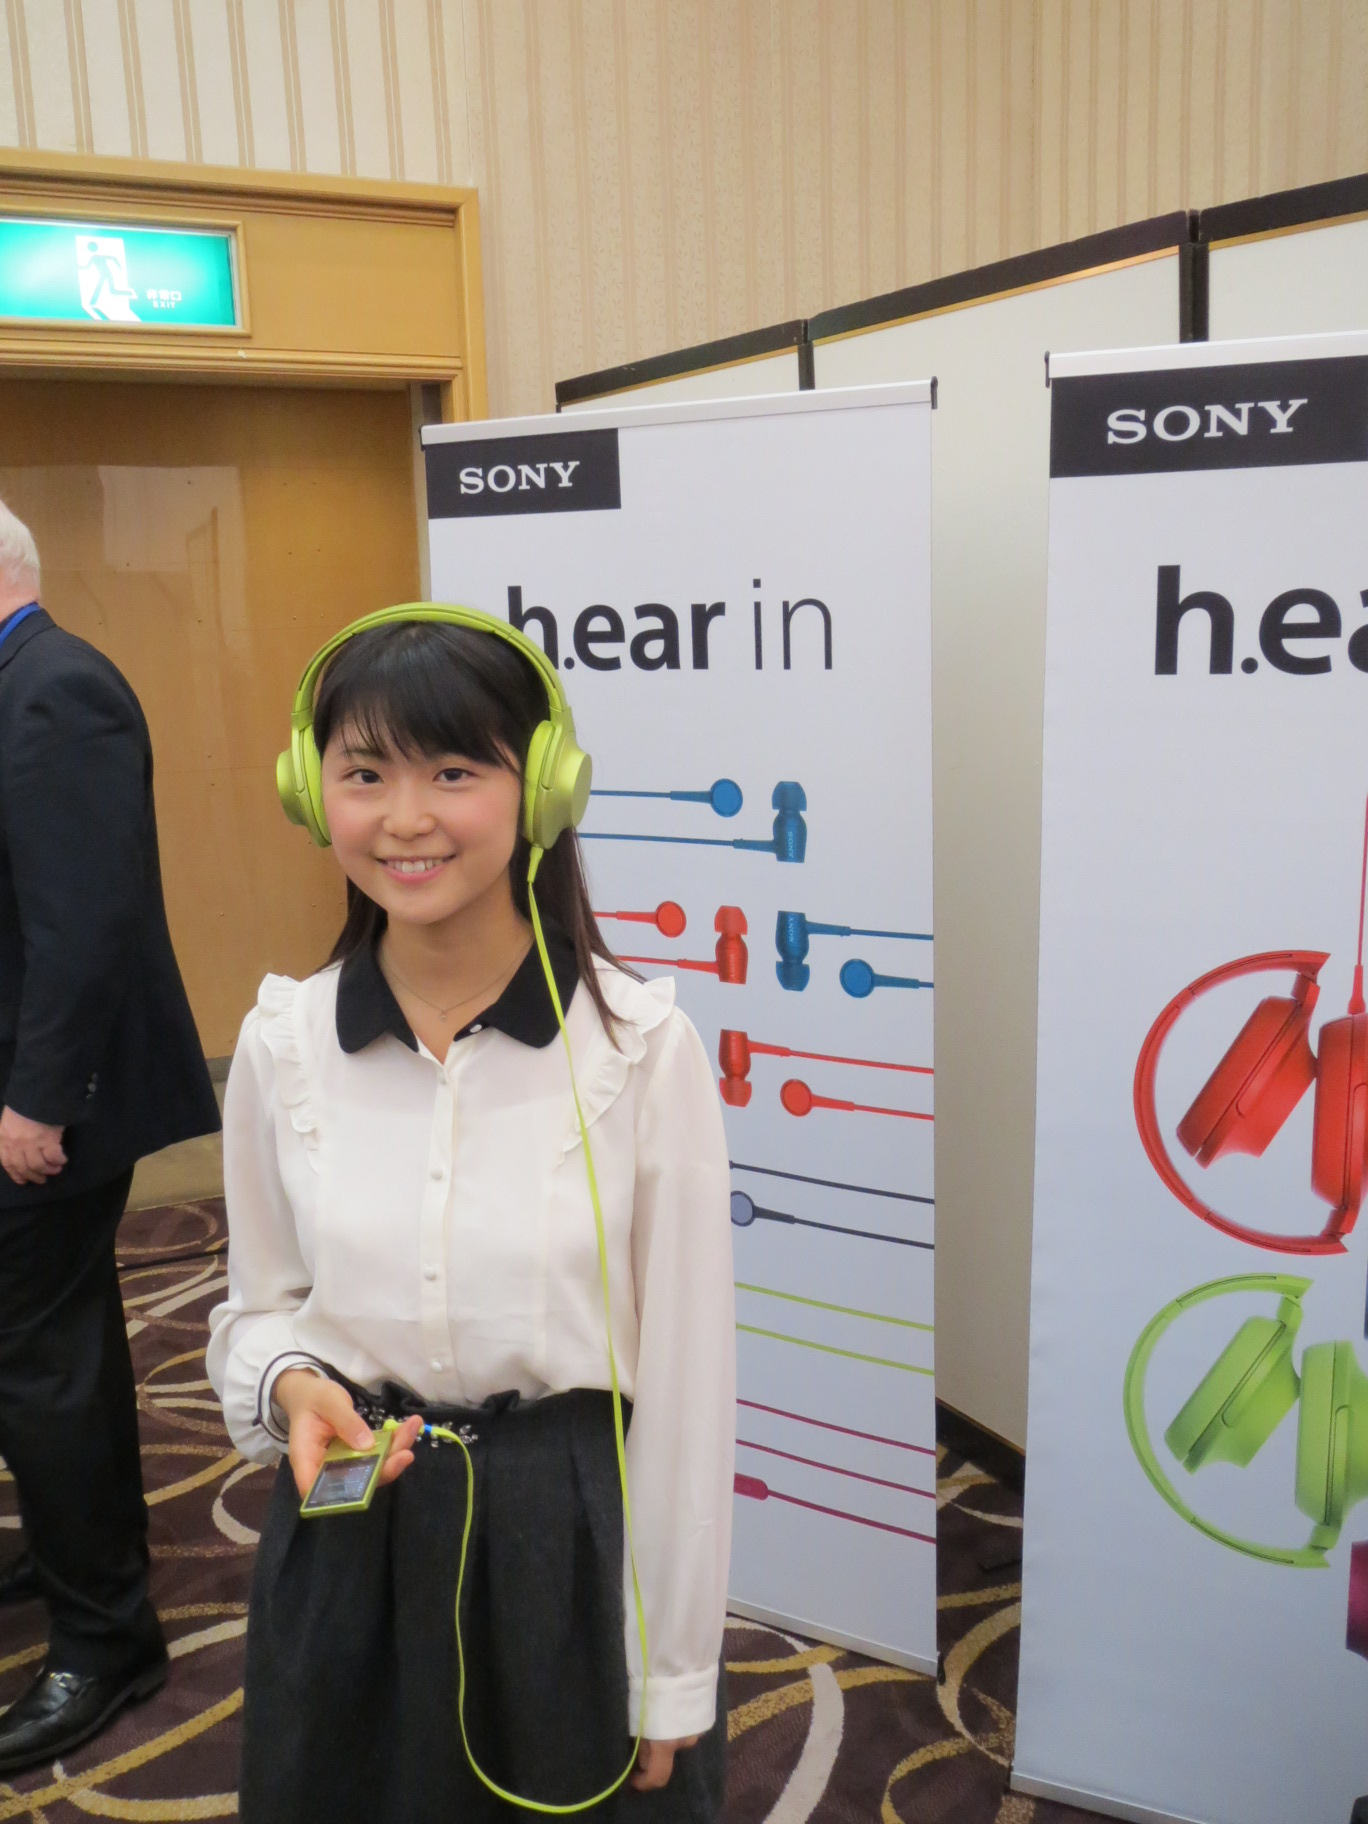 Sony h.ear in